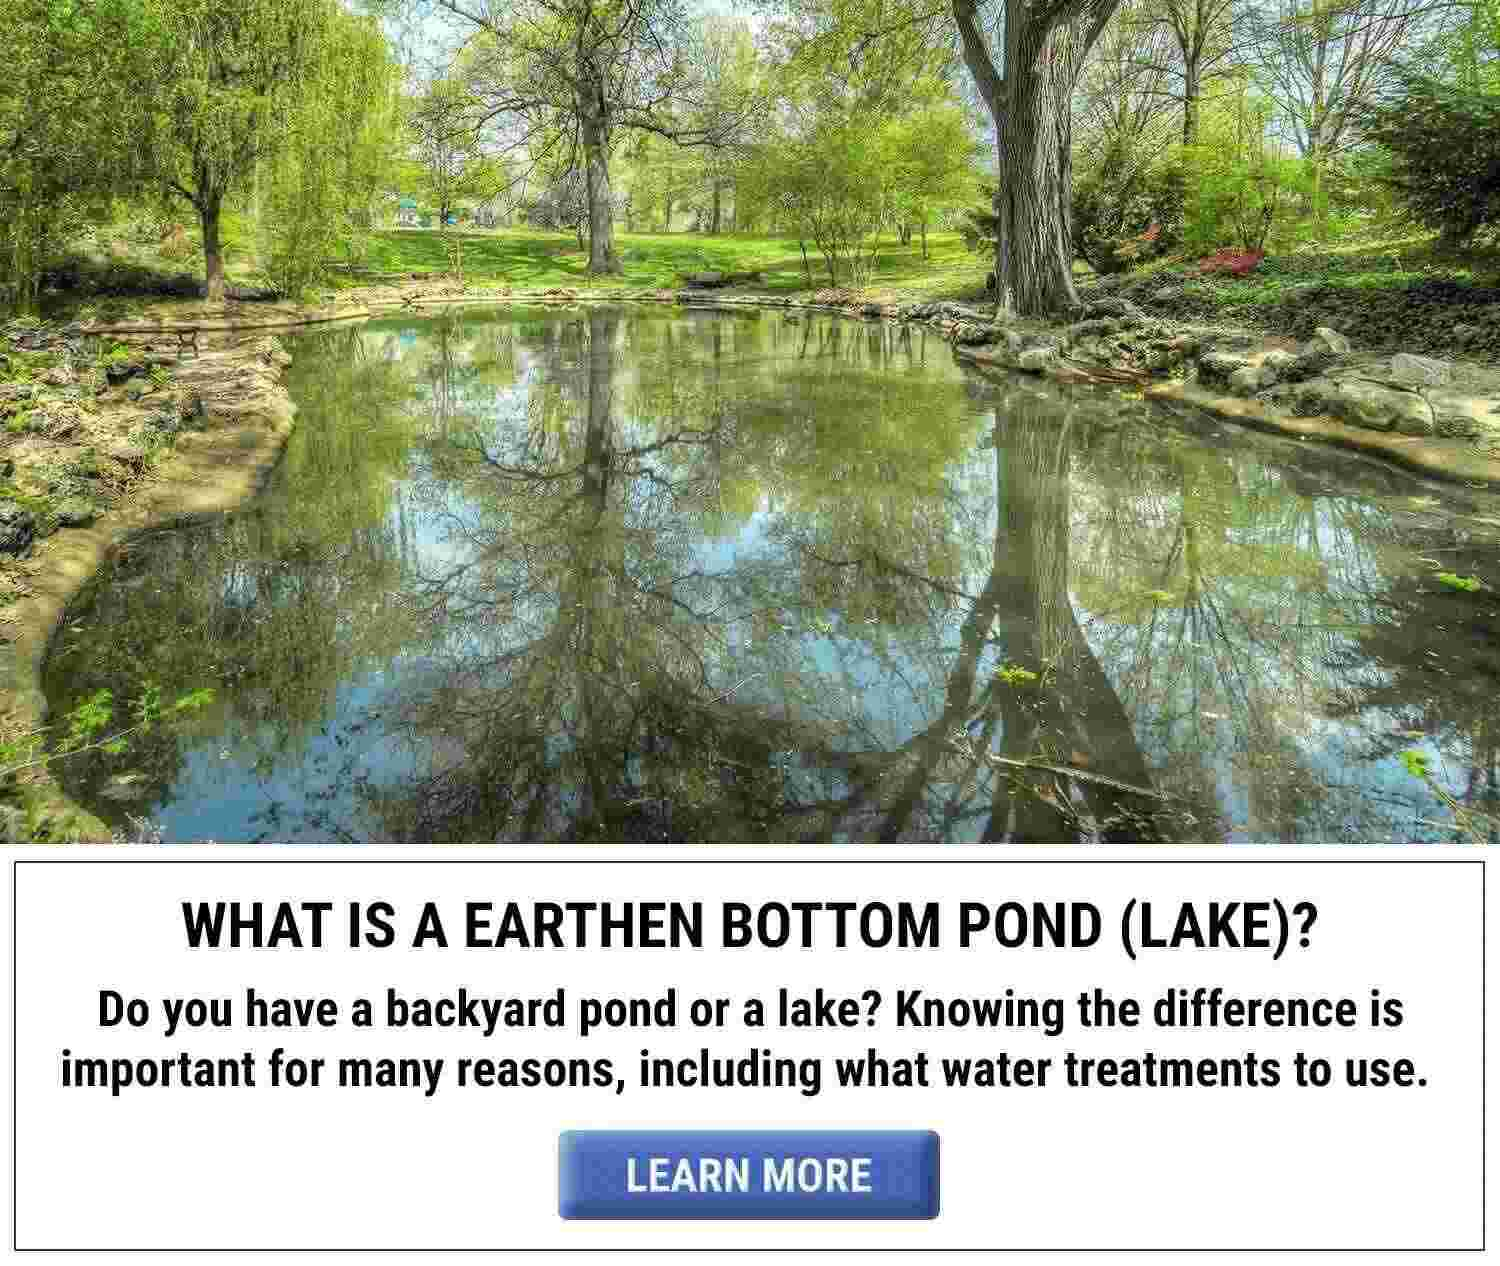 Learn why we classify a pond as an earthen bottom pond, therefor a lake